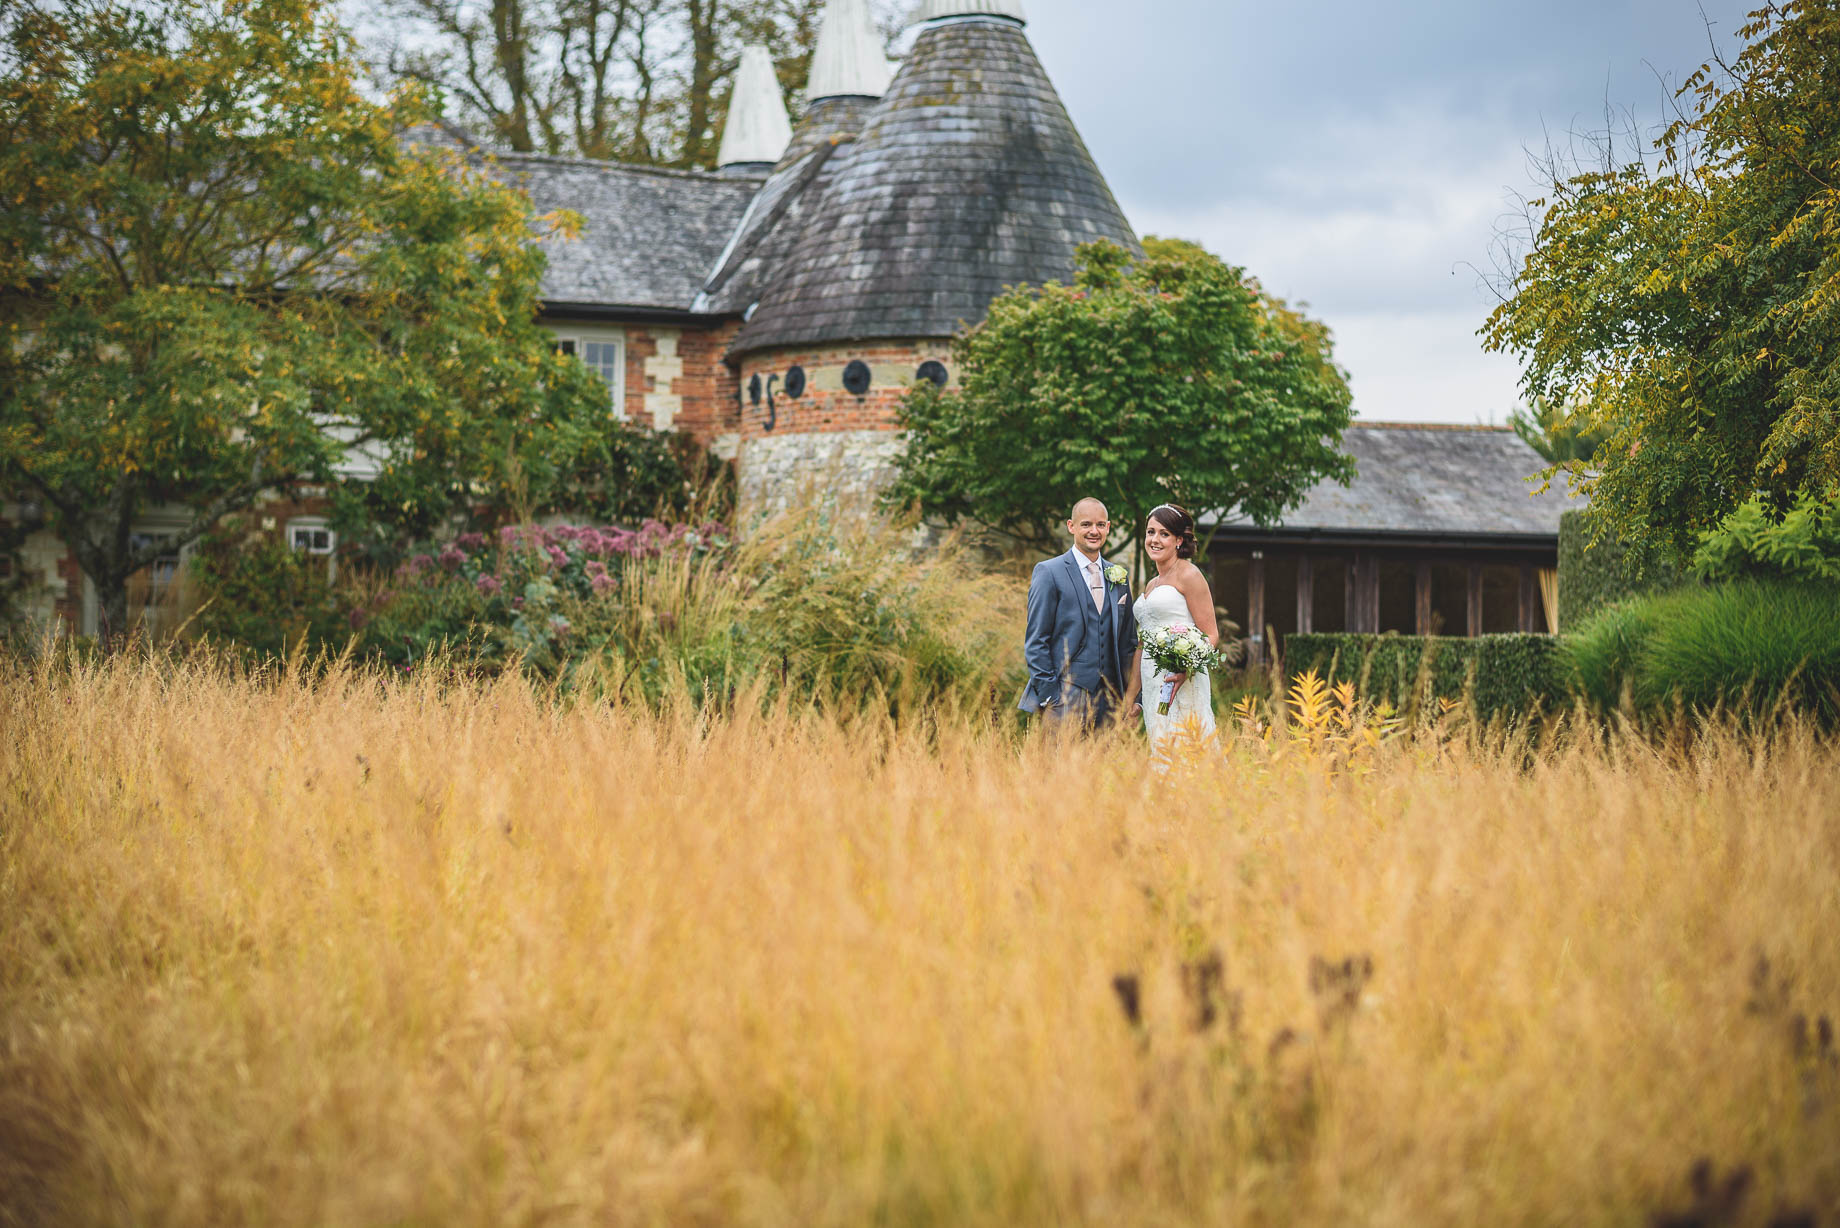 Bury Court Barn wedding photography - Guy Collier Photography - Karen and John (86 of 166)